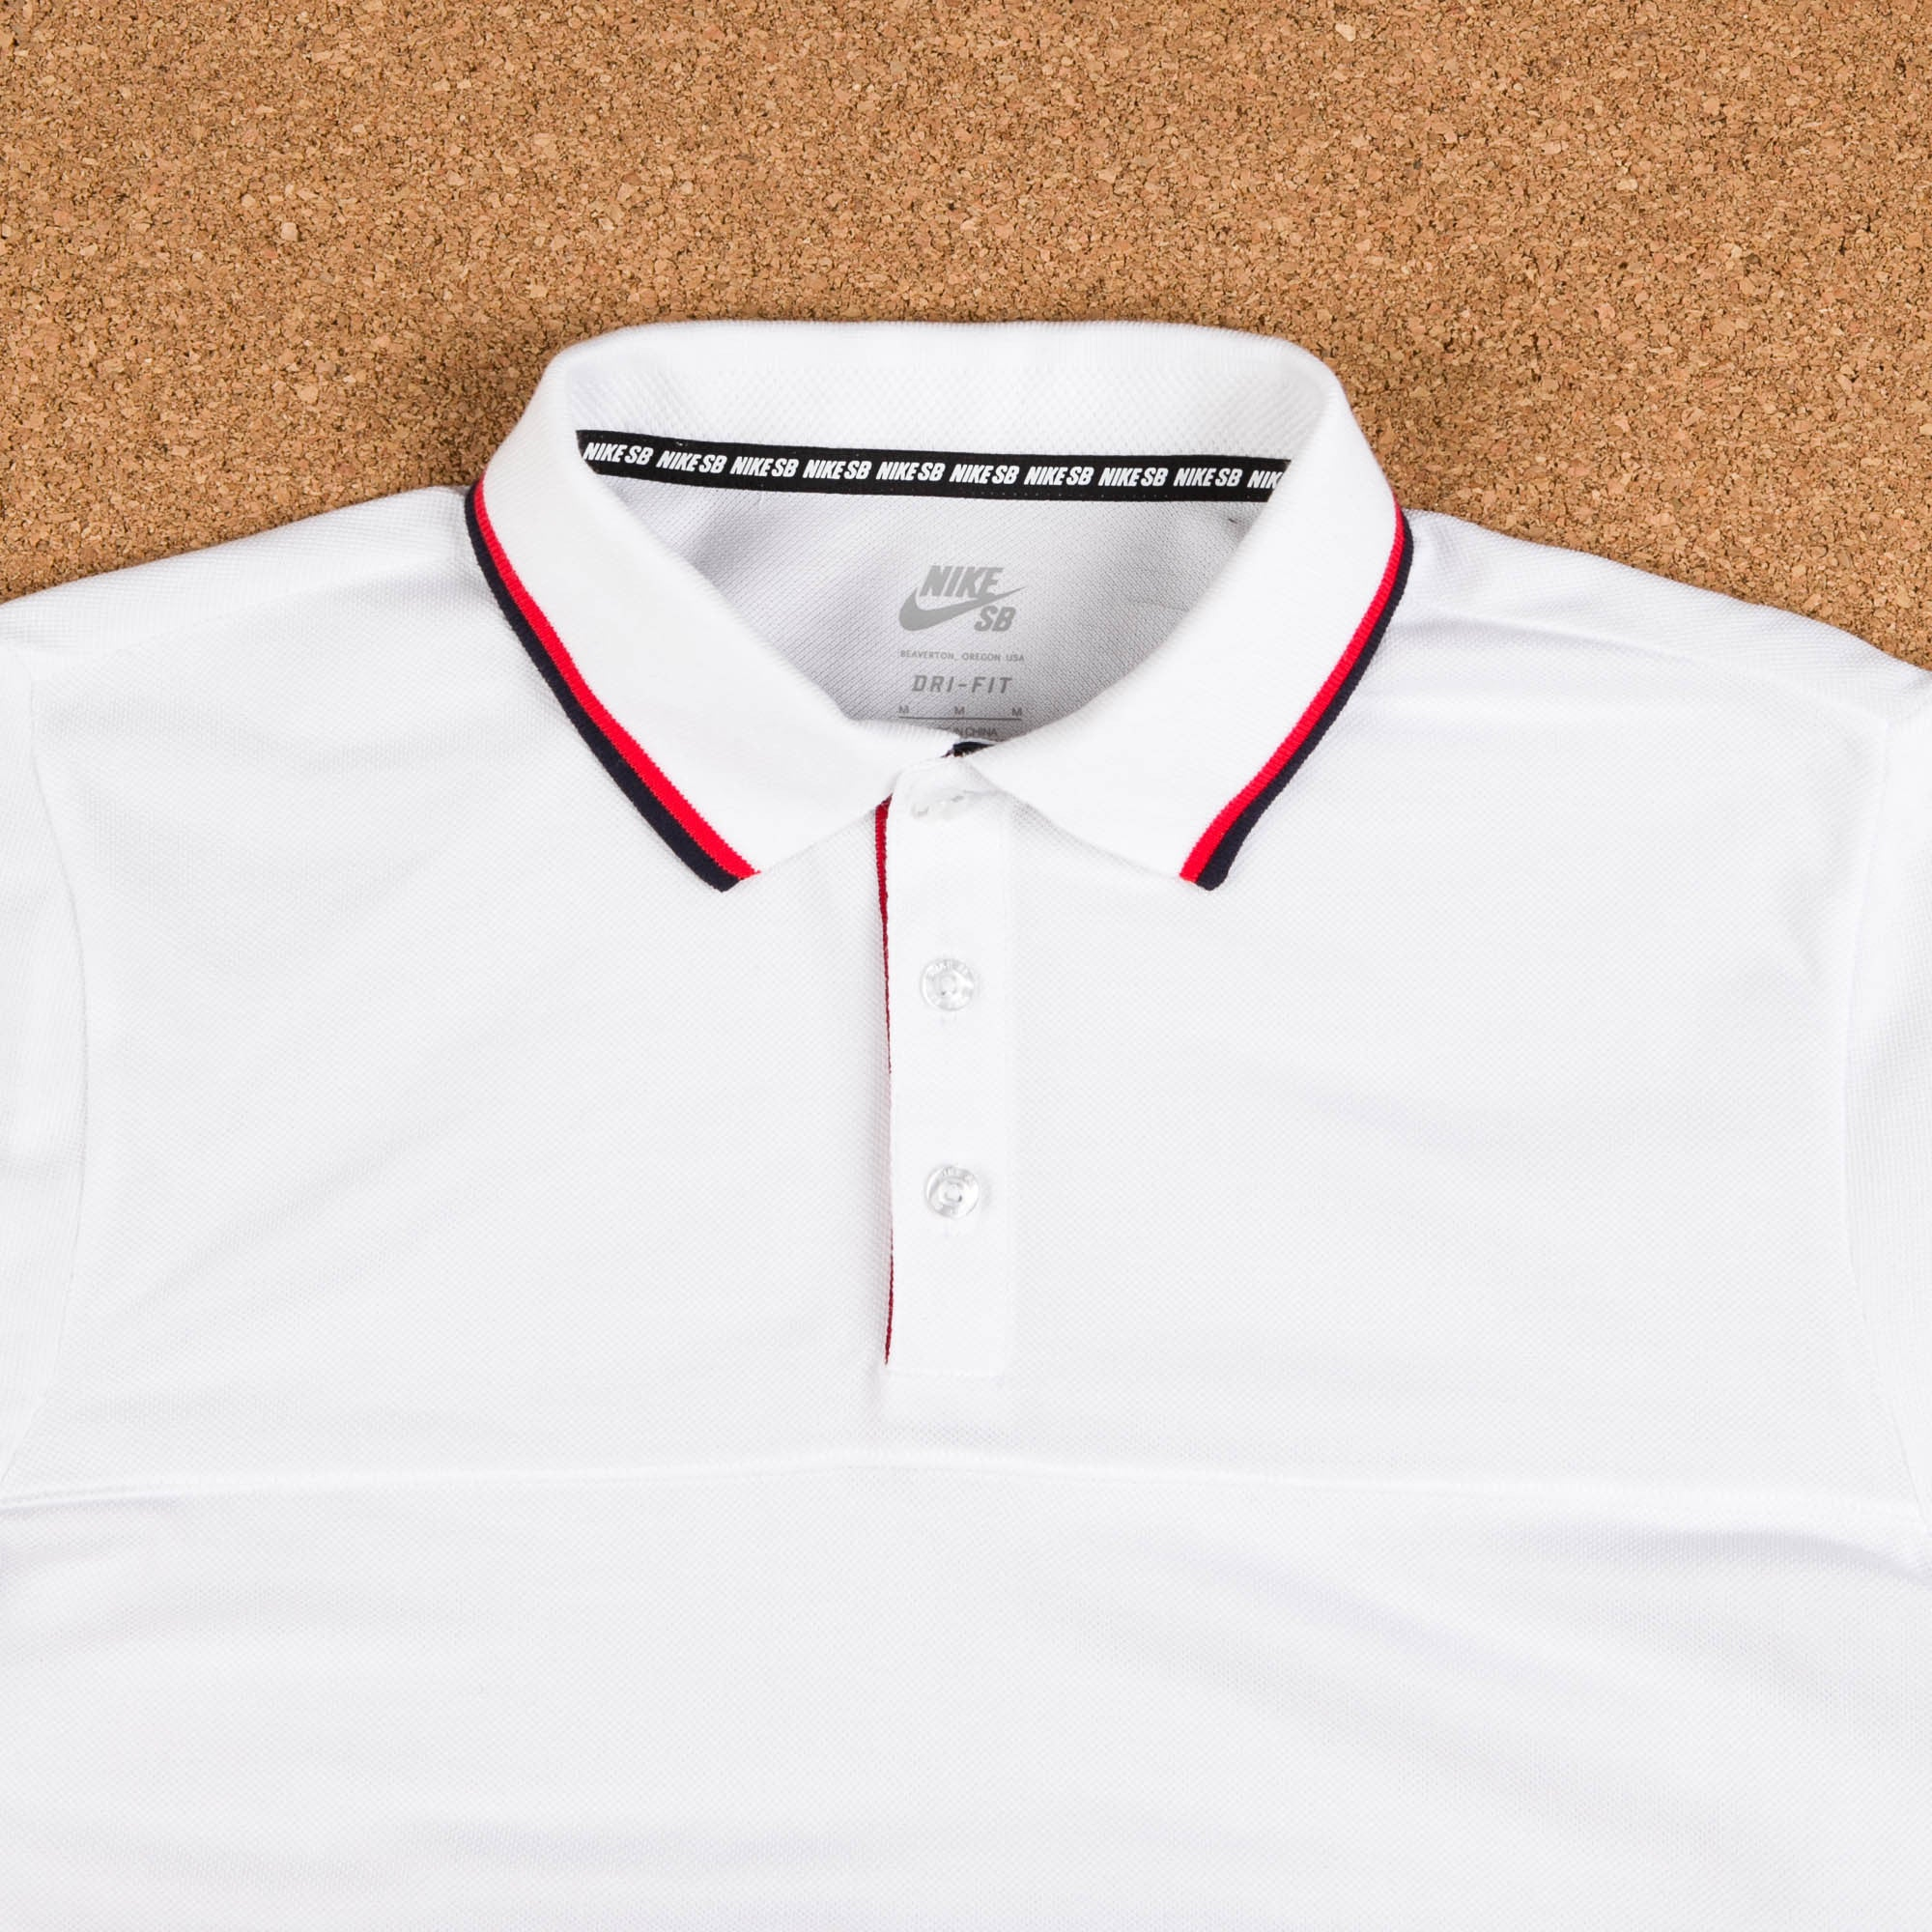 Nike SB x 917 Long Sleeve Polo Shirt - White